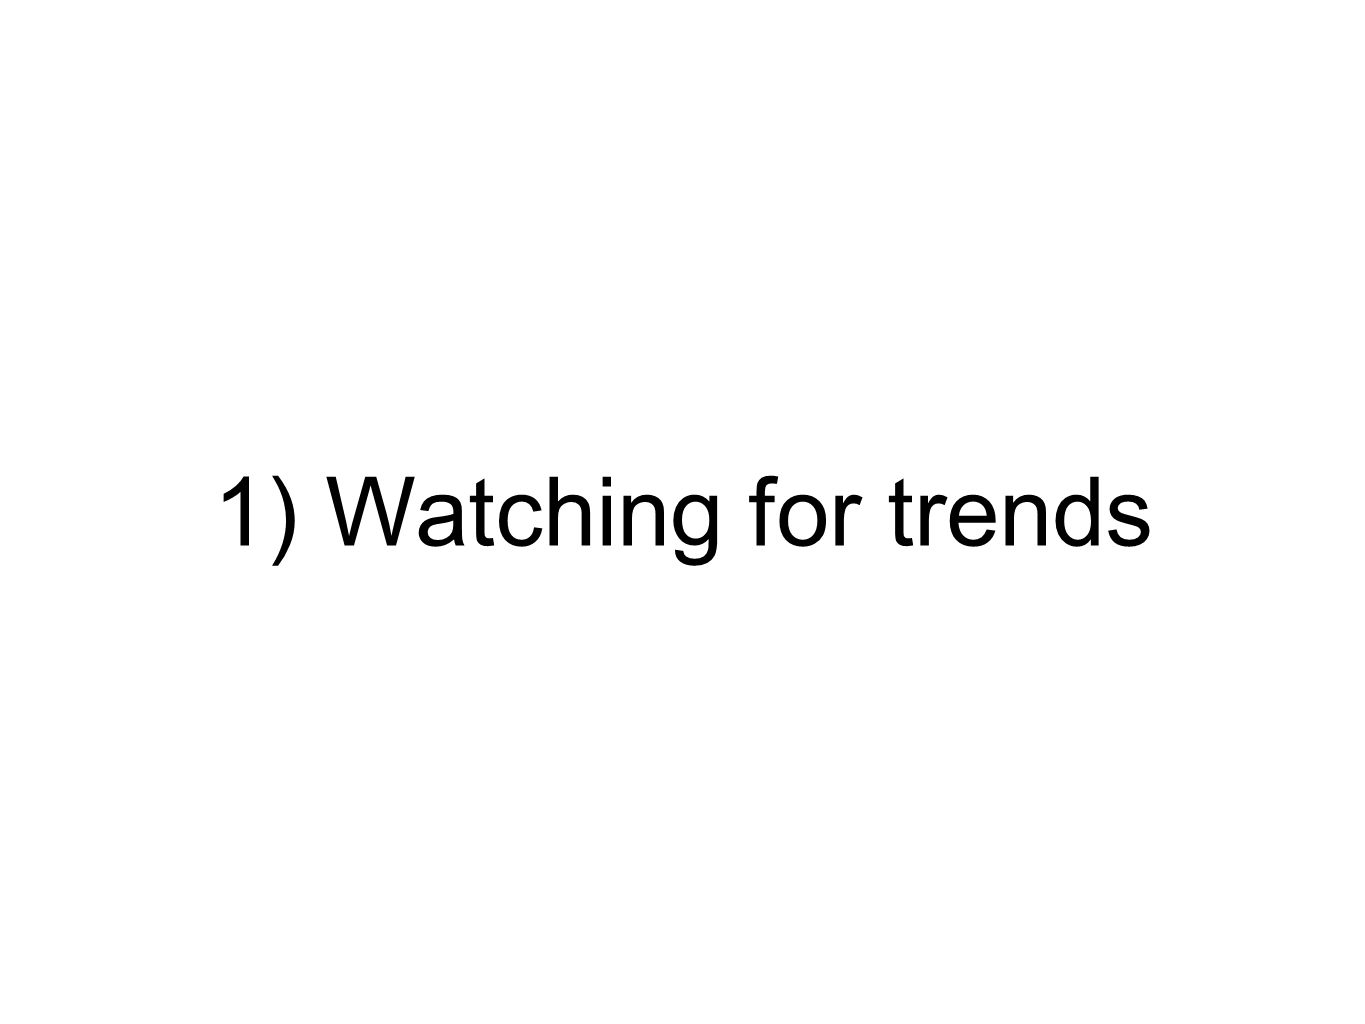 1) Watching for trends